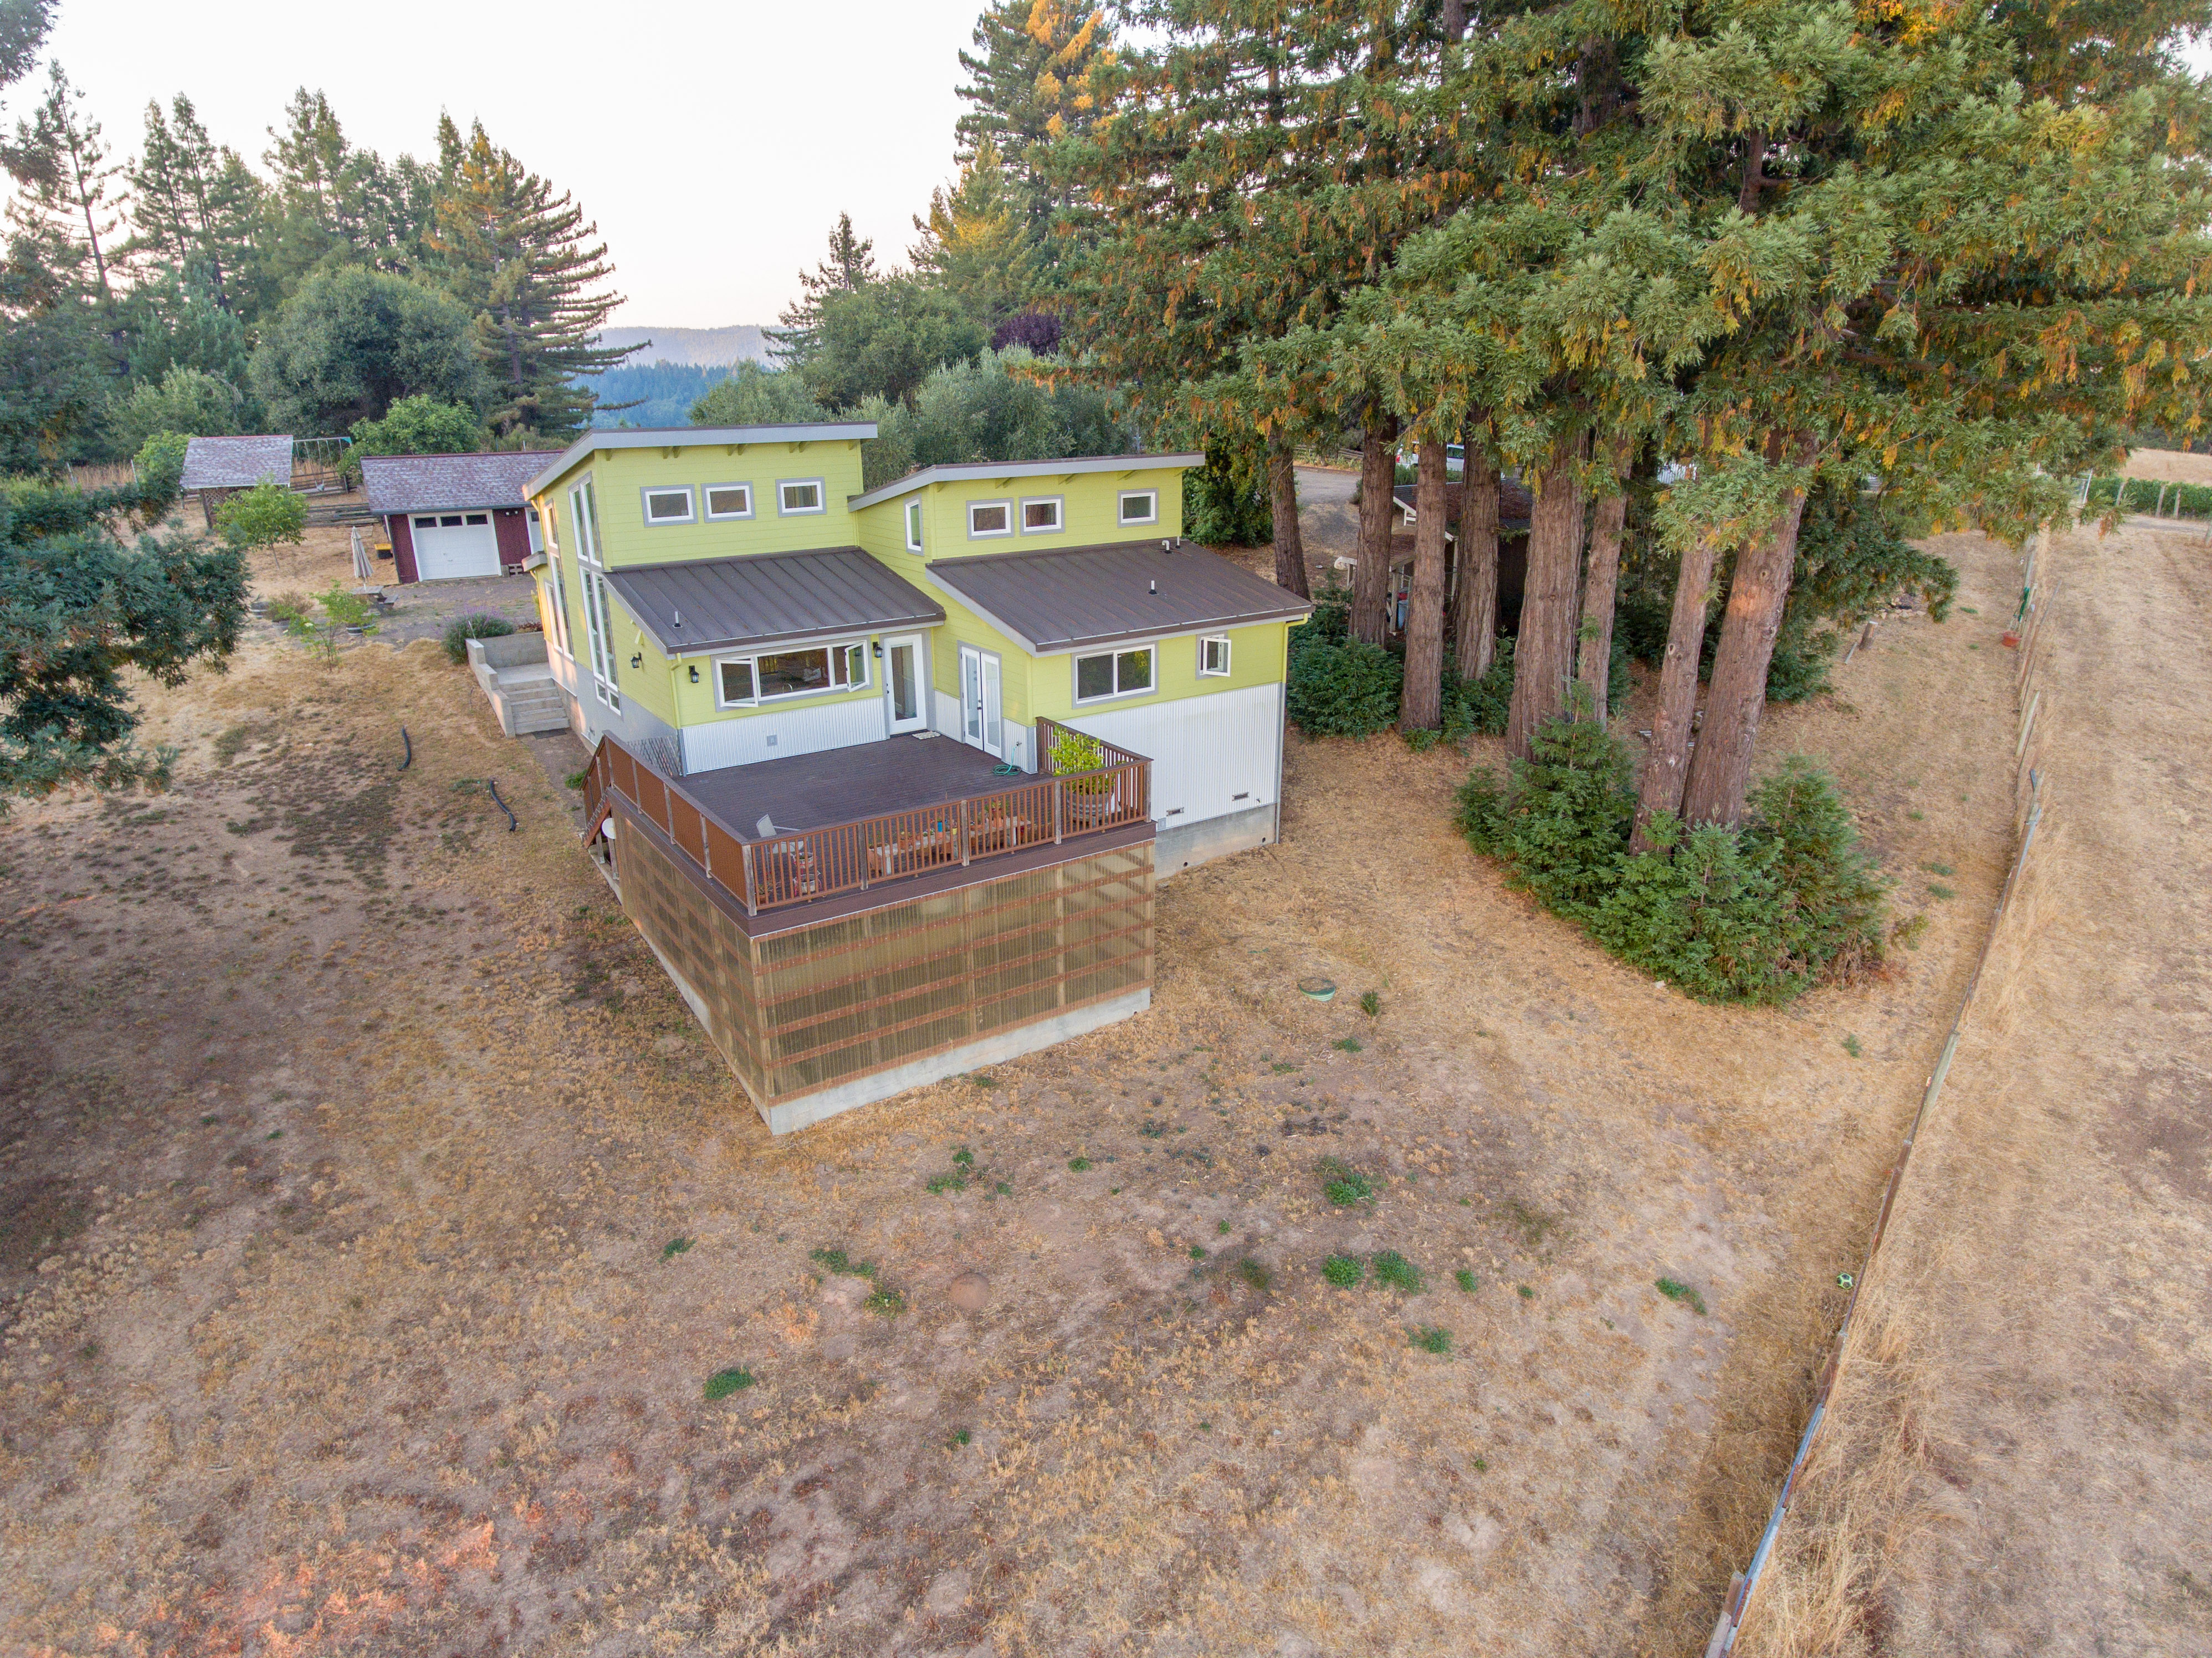 Built in 2013, this beautiful home awaits a new family.  Watched over by redwoods